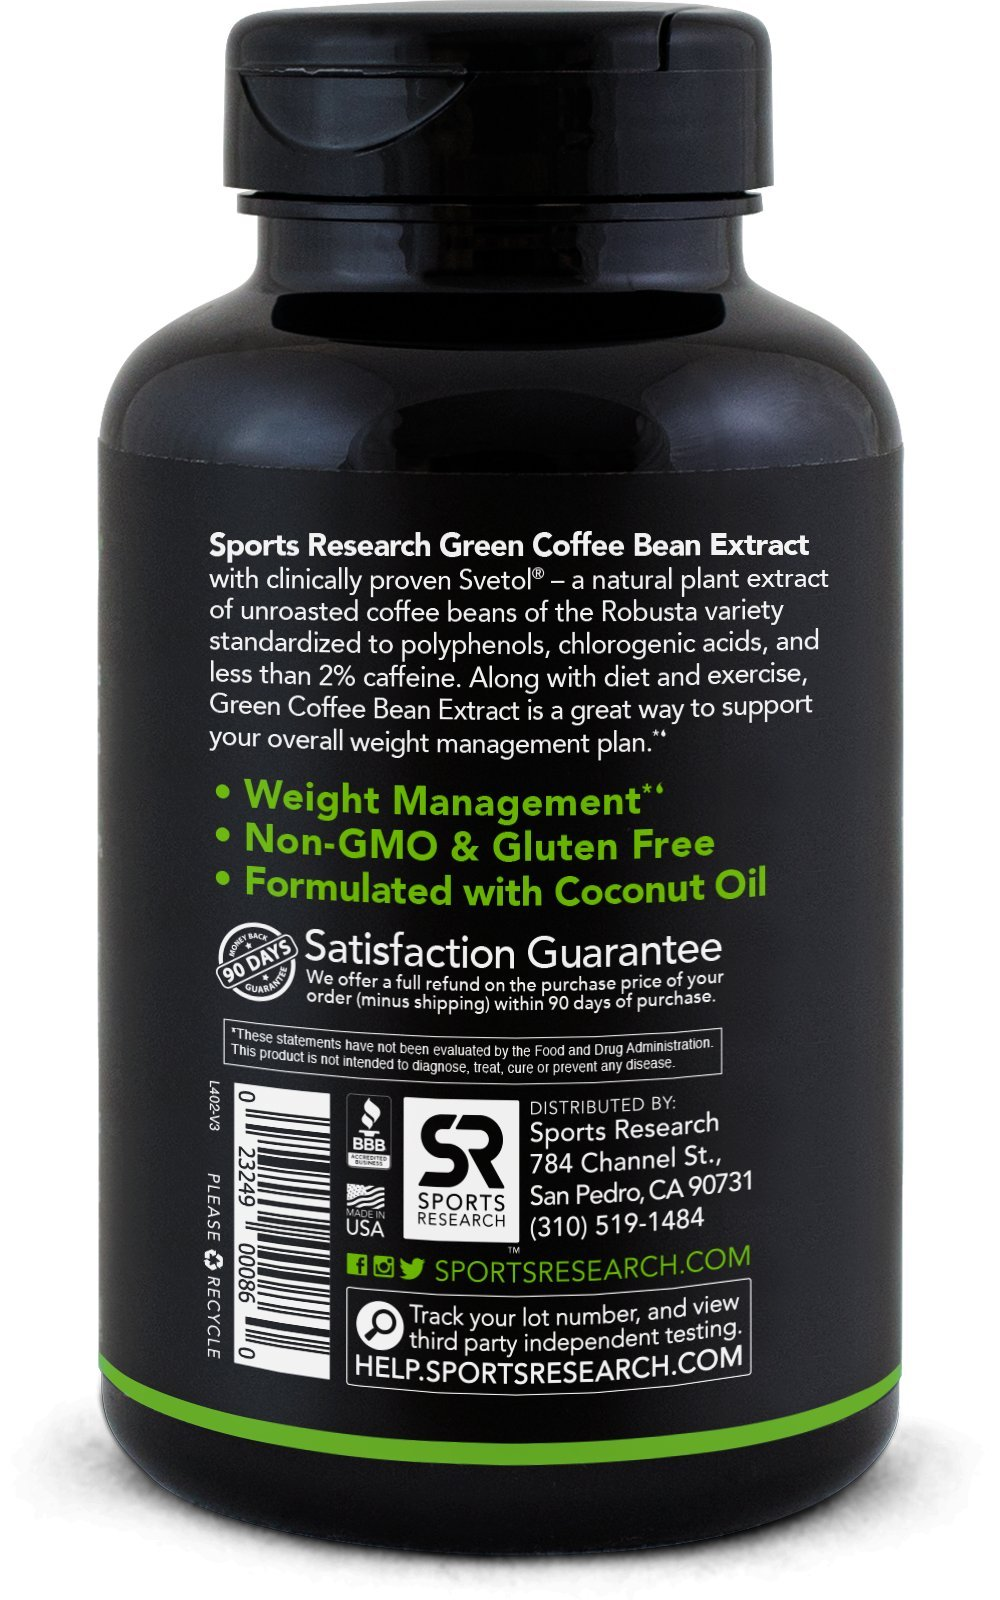 SVETOL Green Coffee Bean Extract, 90 Liquid Softgels with 400mg of Clinically-Proven Svetol Per Cap by Sports Research (Image #7)